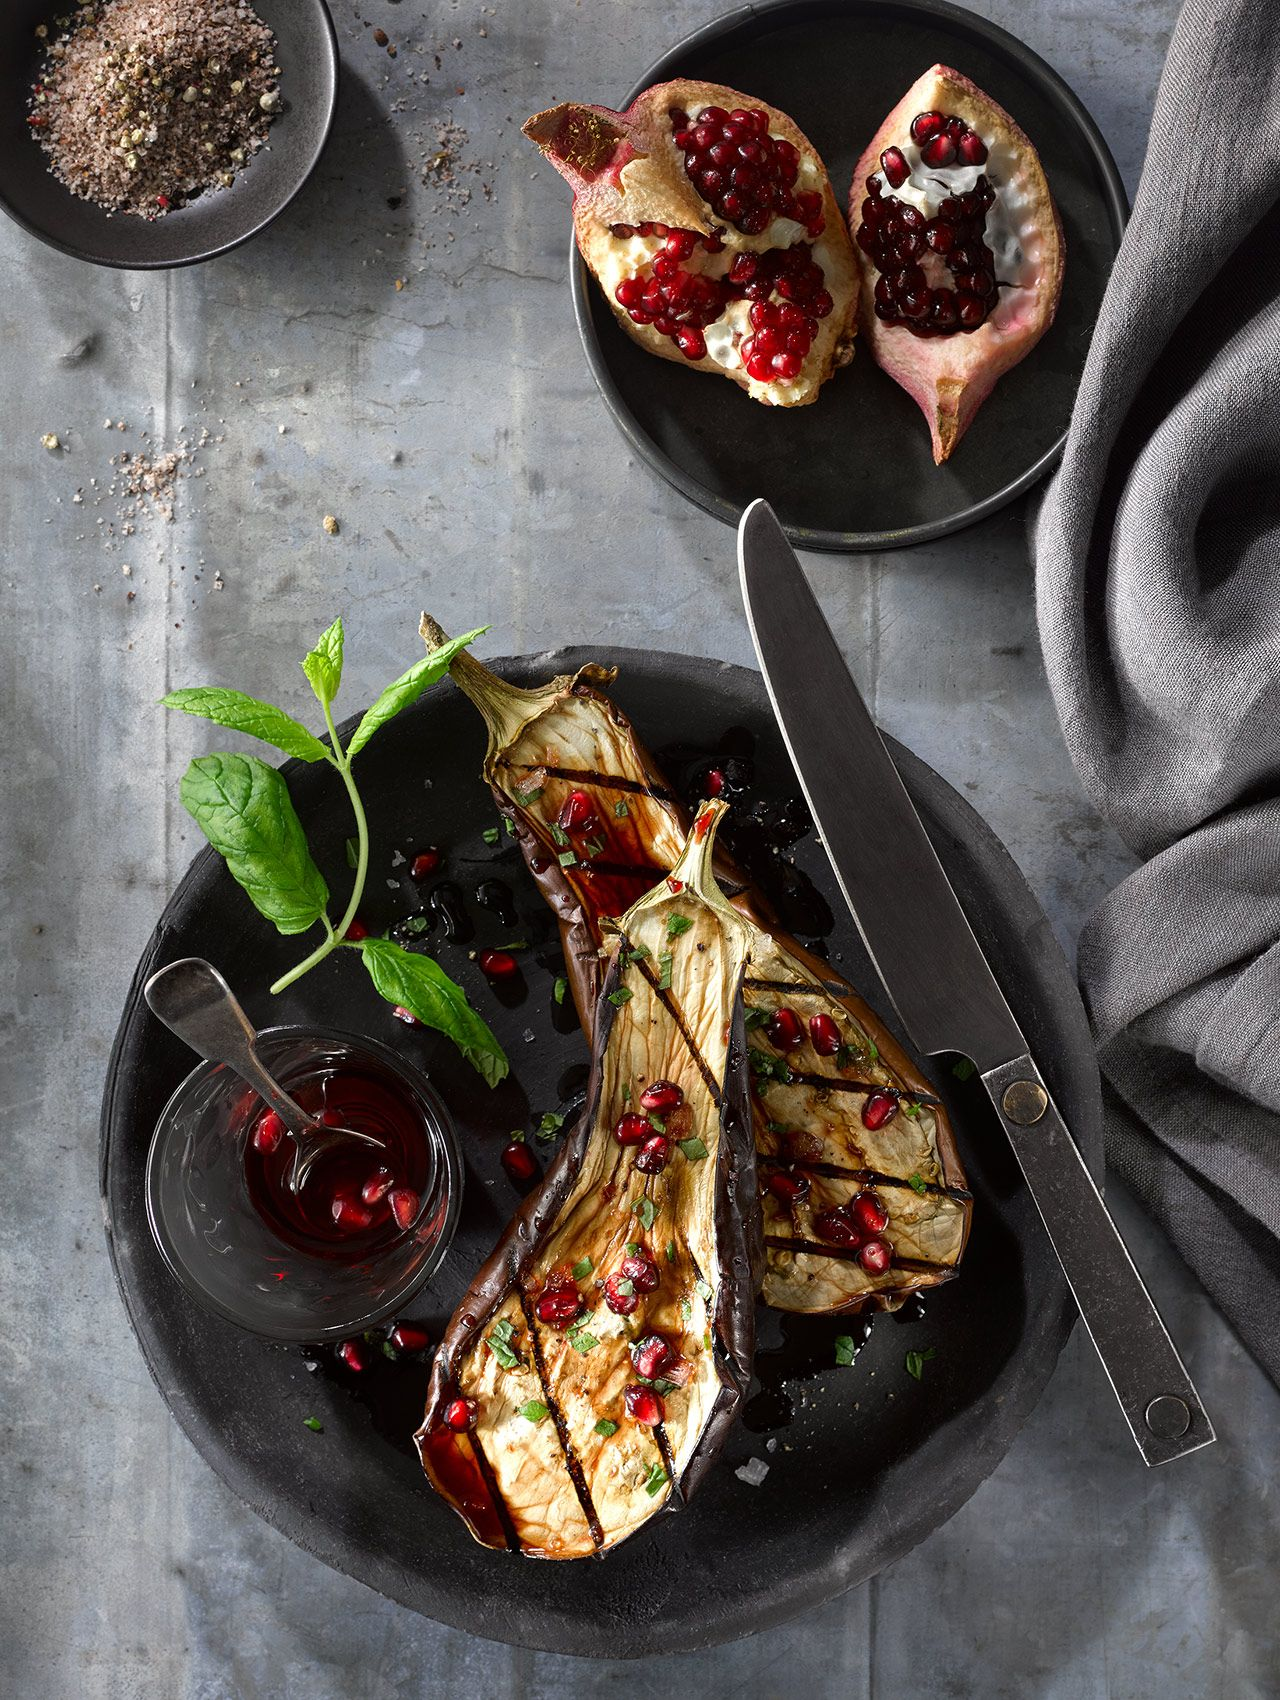 Grilled Eggplant with Pomegranate Seeds